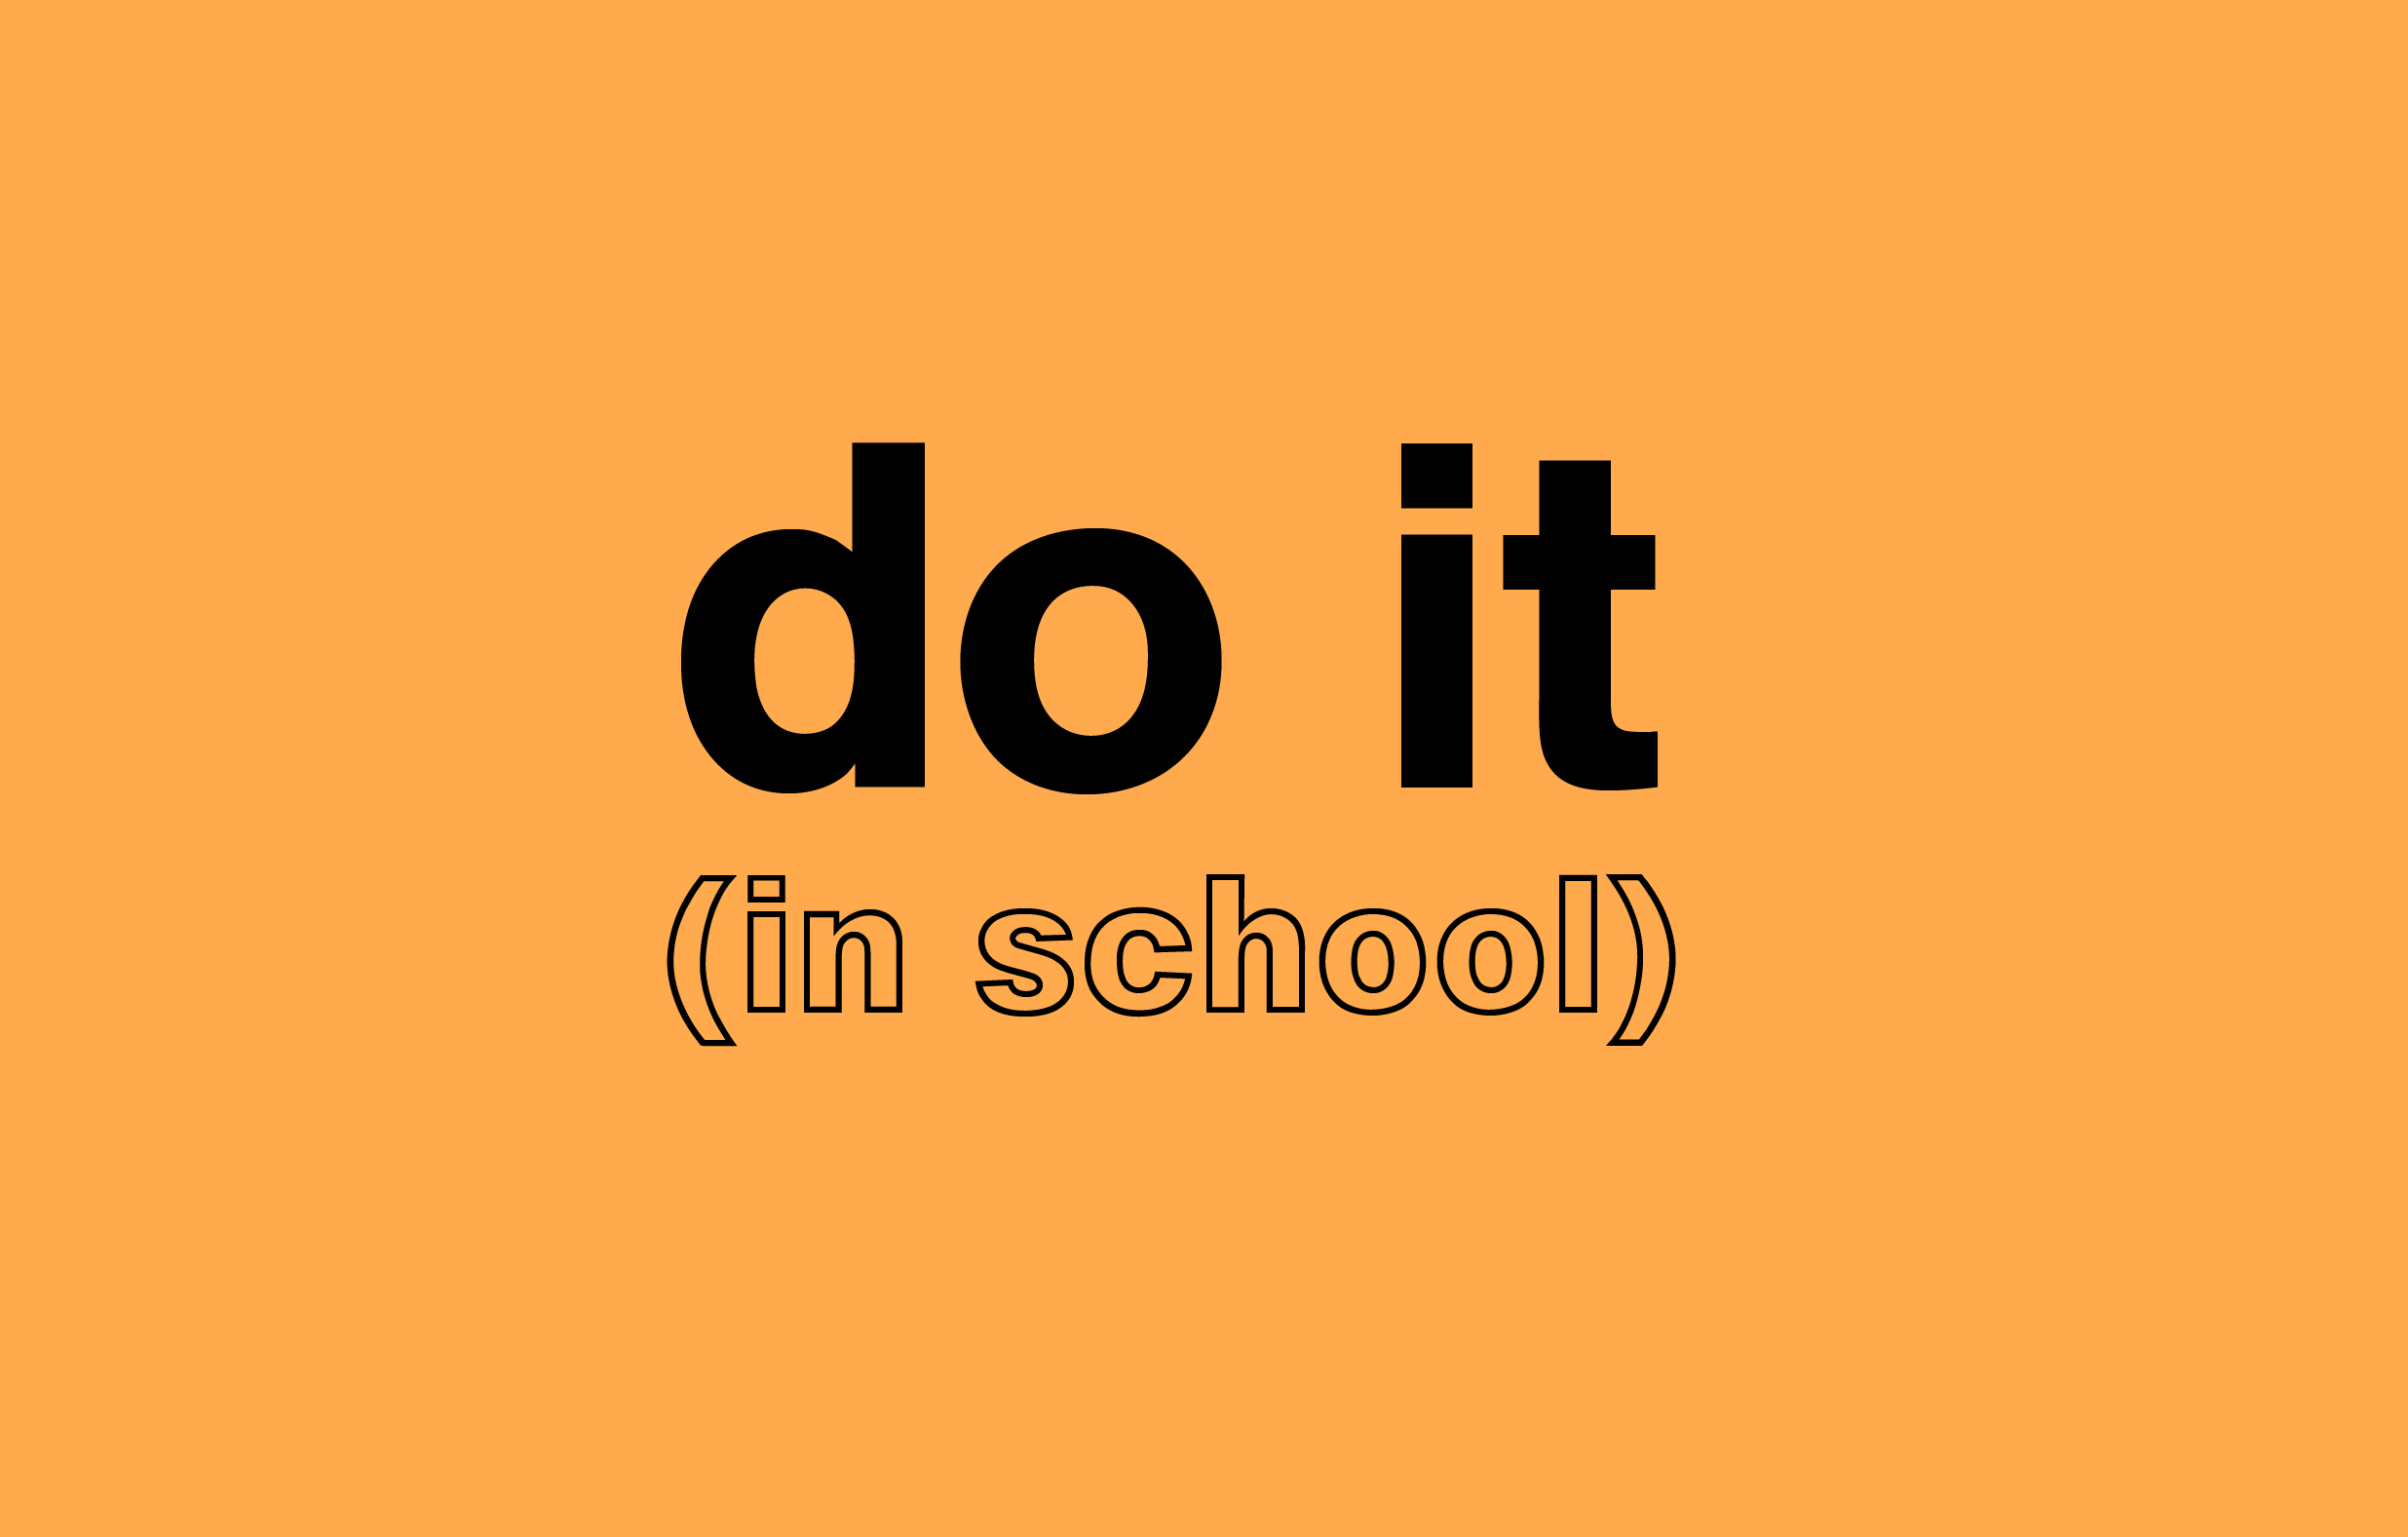 do-it_inschool_art-promo-logos-05.jpg